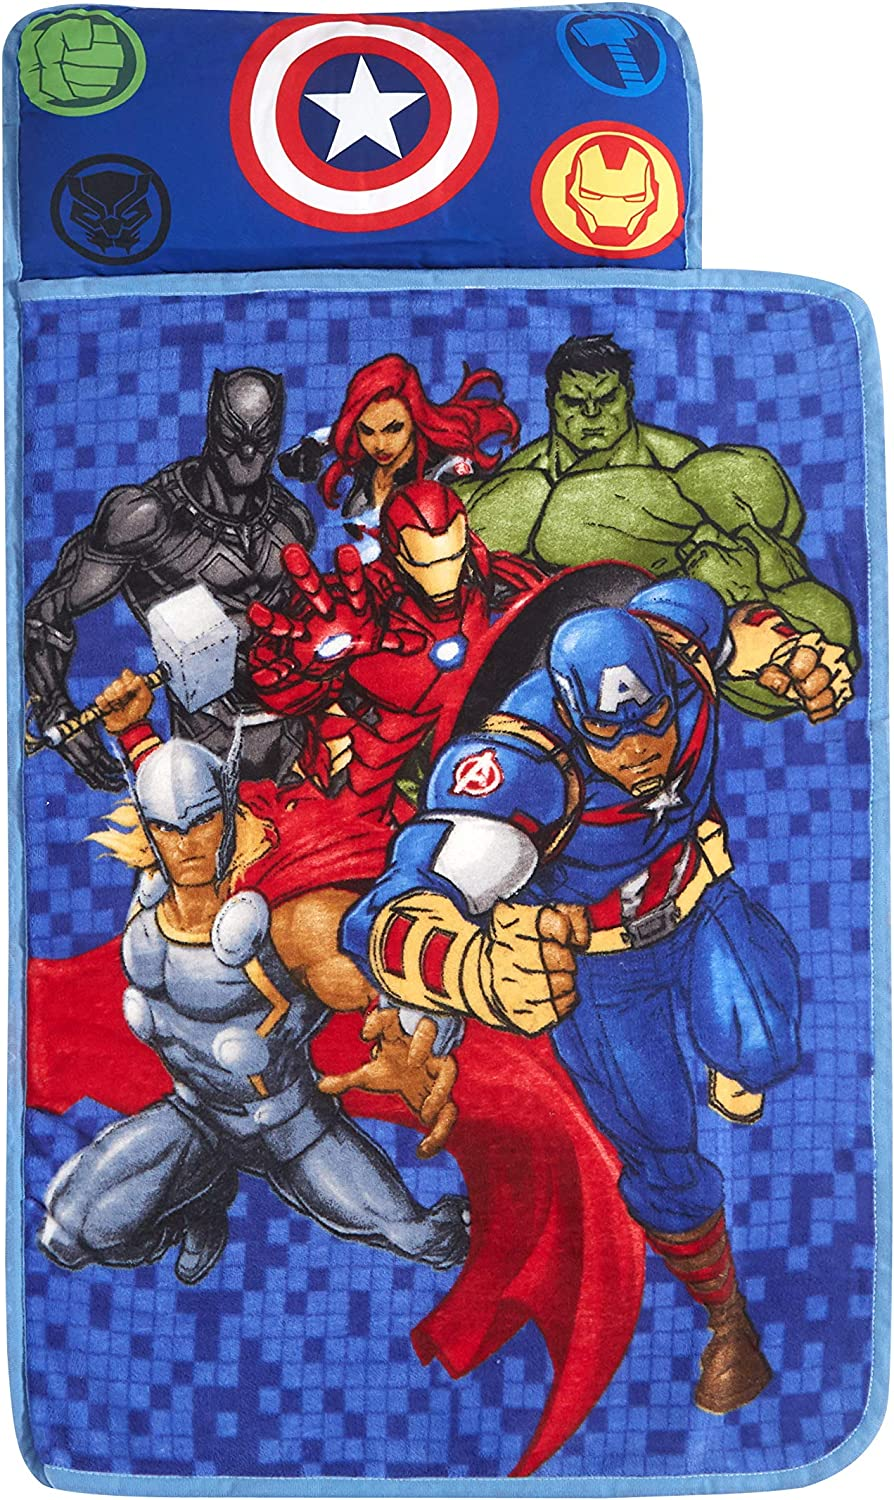 Idea Nuova Marvel Avengers Super Soft Toddler Quilted Nap Mat with Built in Pillow,26